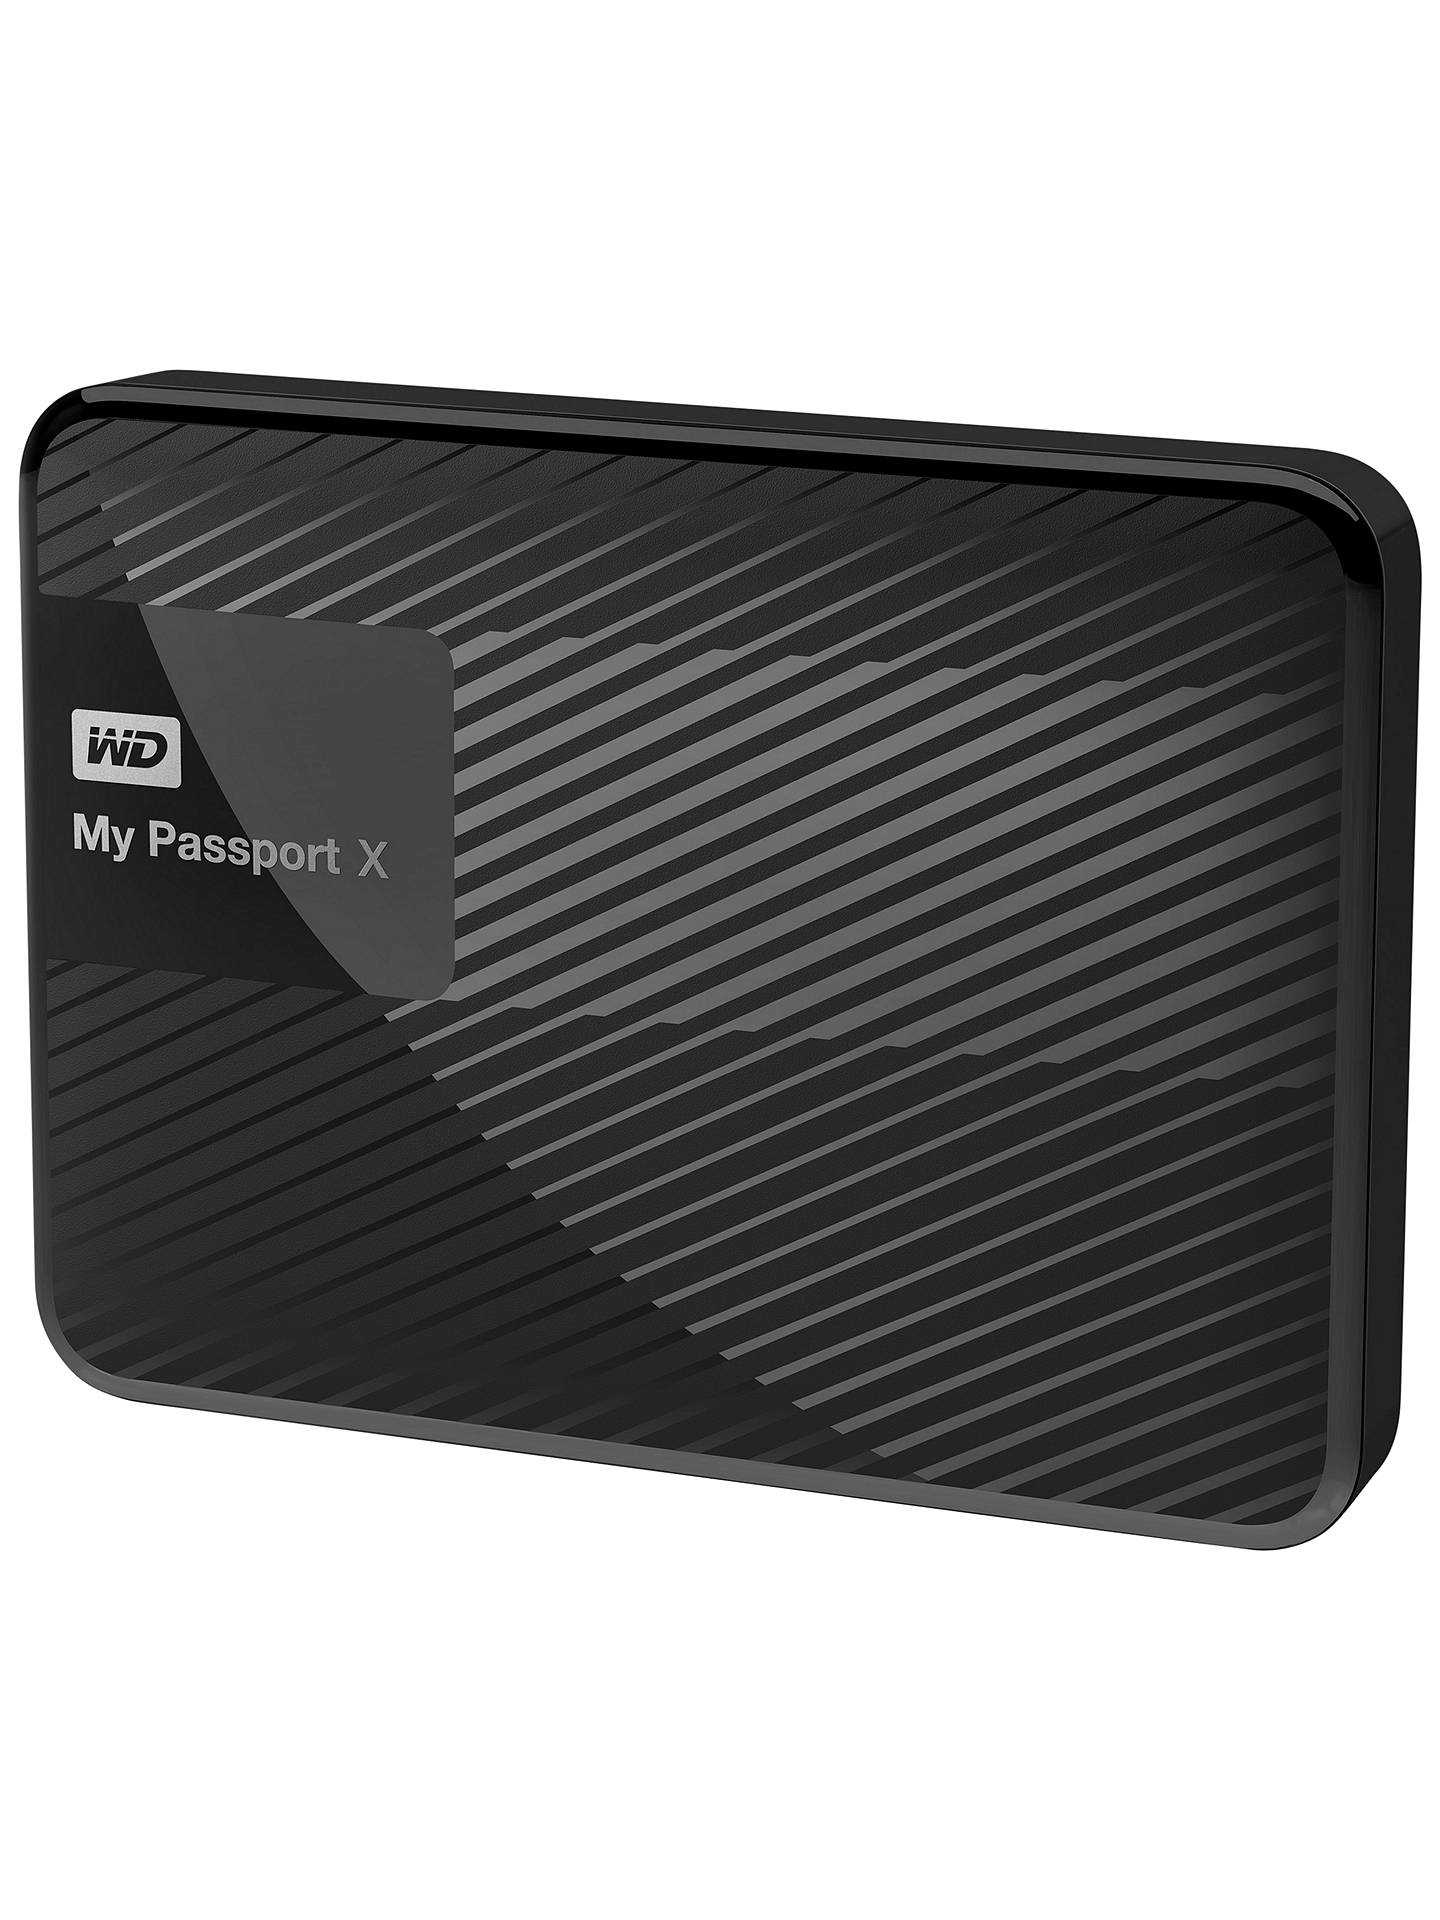 WD My Passport X Games Hard Drive, 2TB, For Xbox One, Xbox 360 & PC